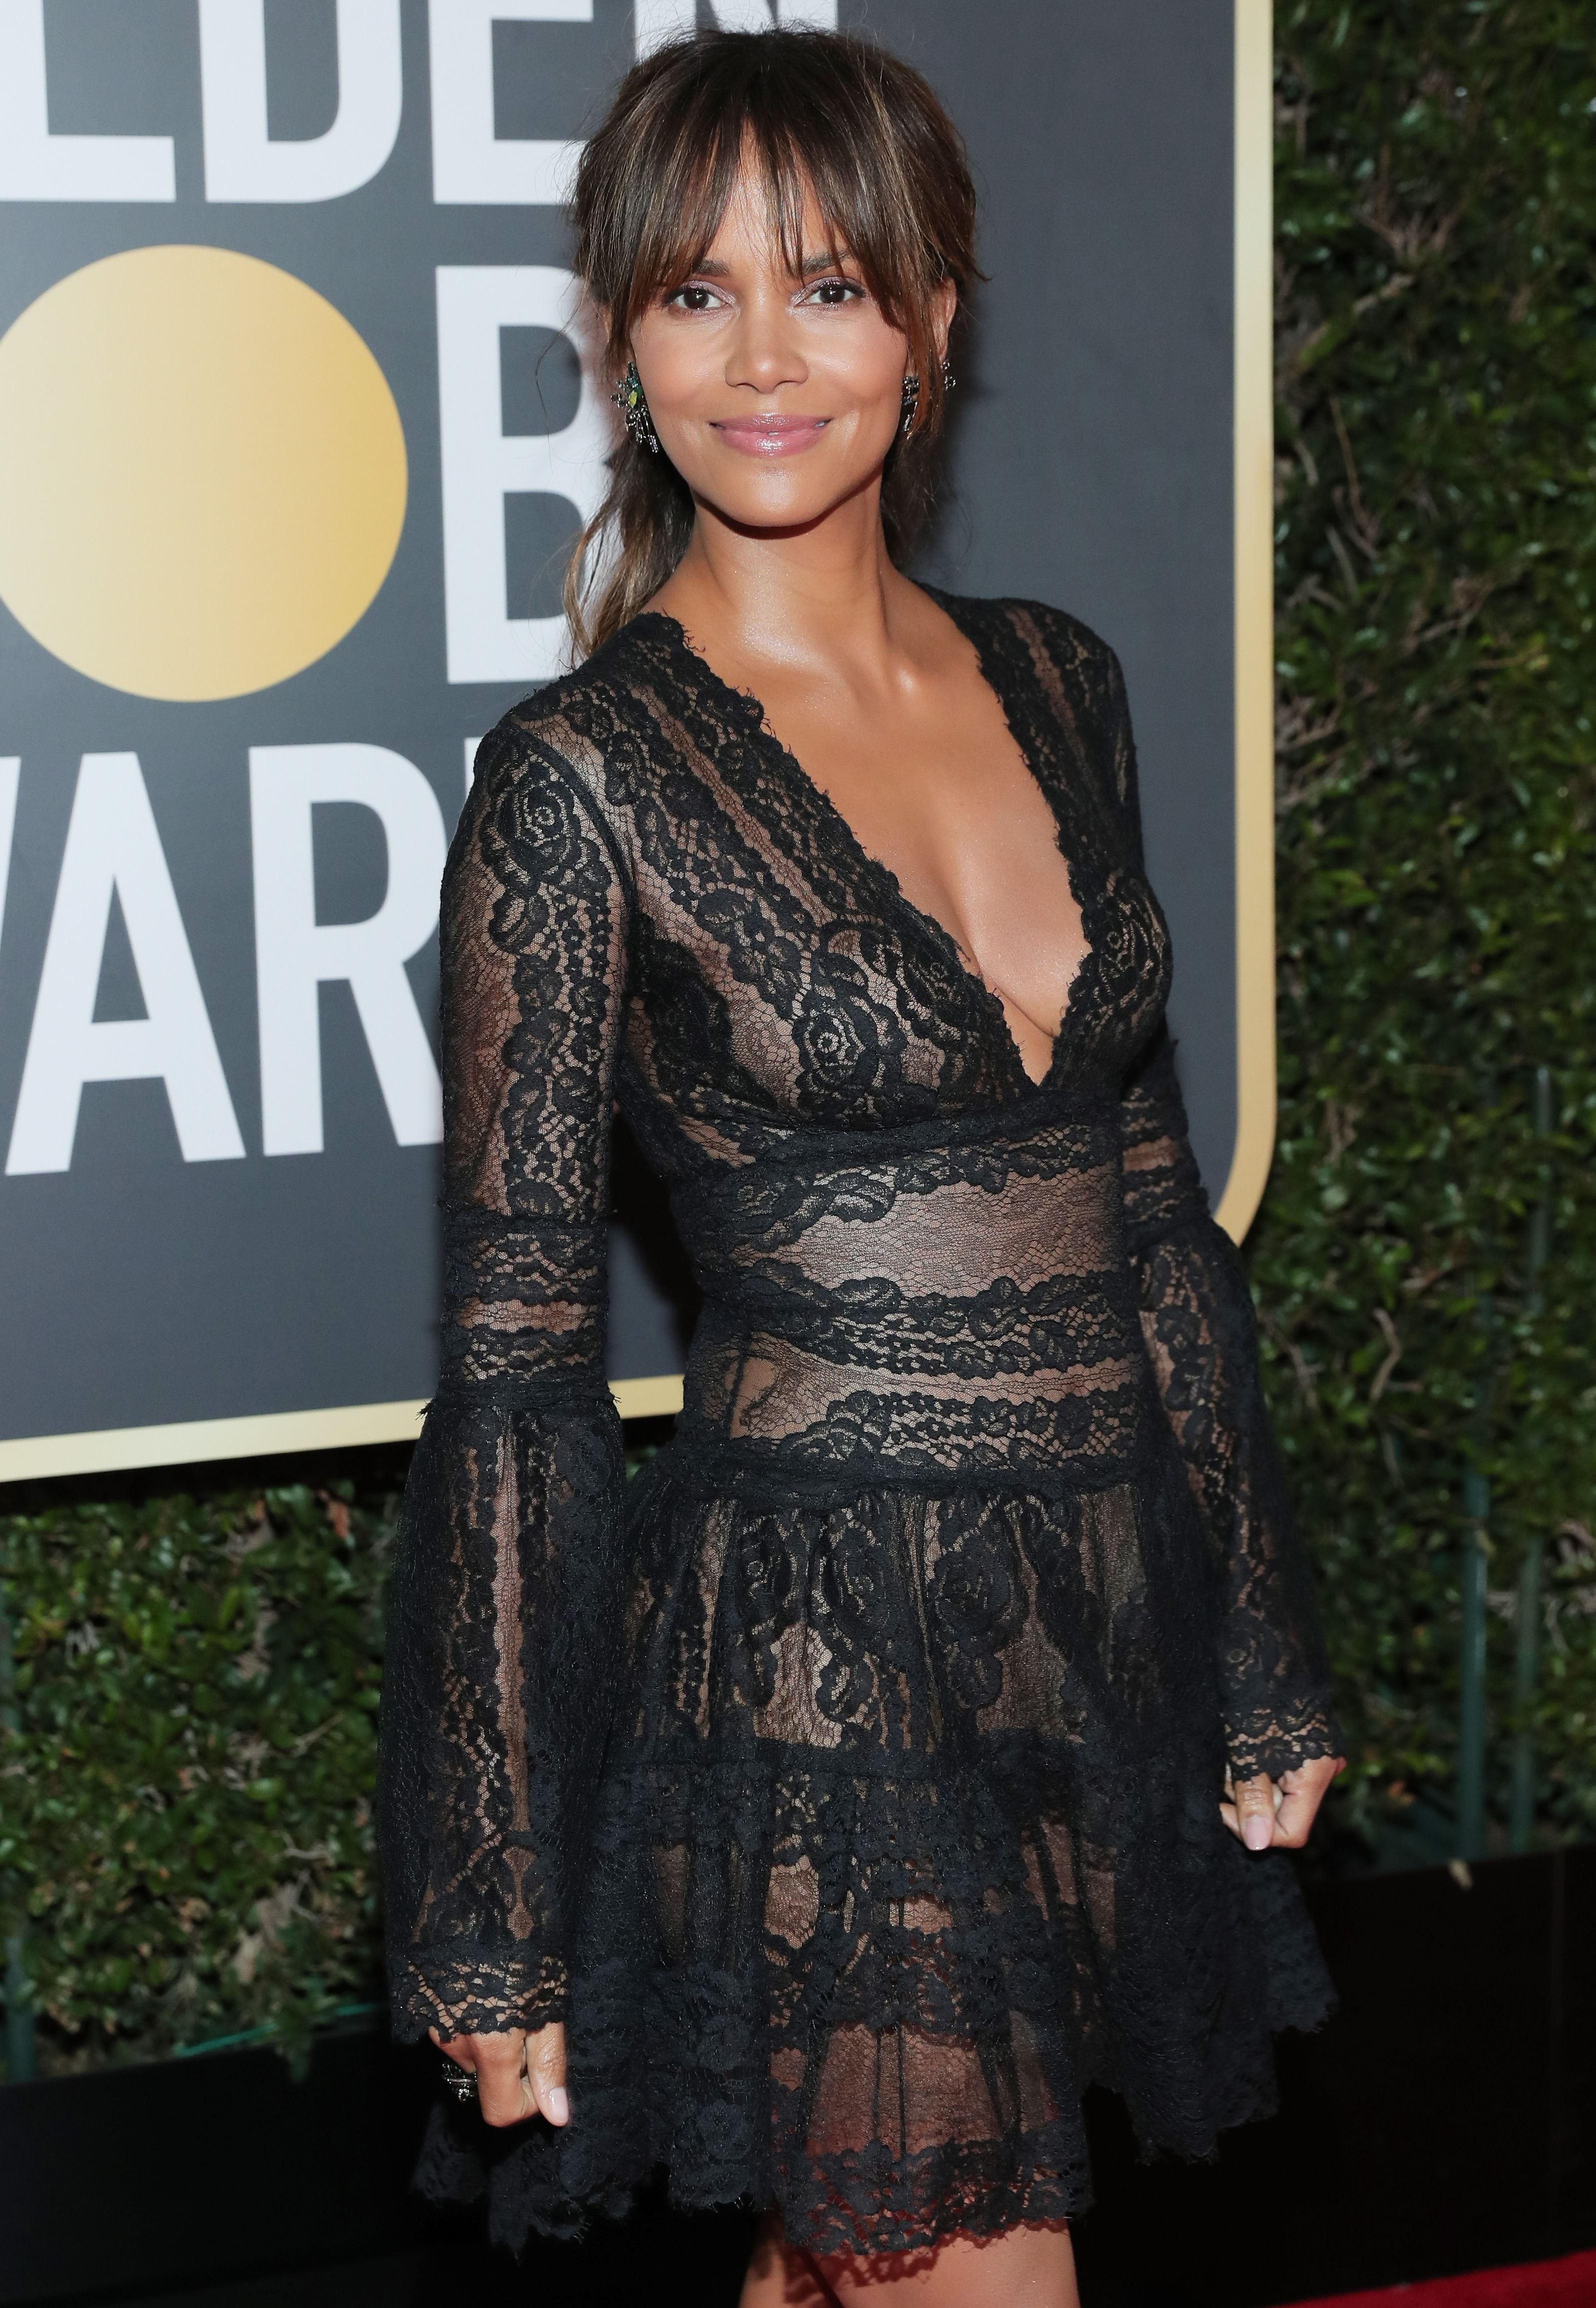 Halle Berry Swears By The Keto Diet—Here's Exactly What She Eats